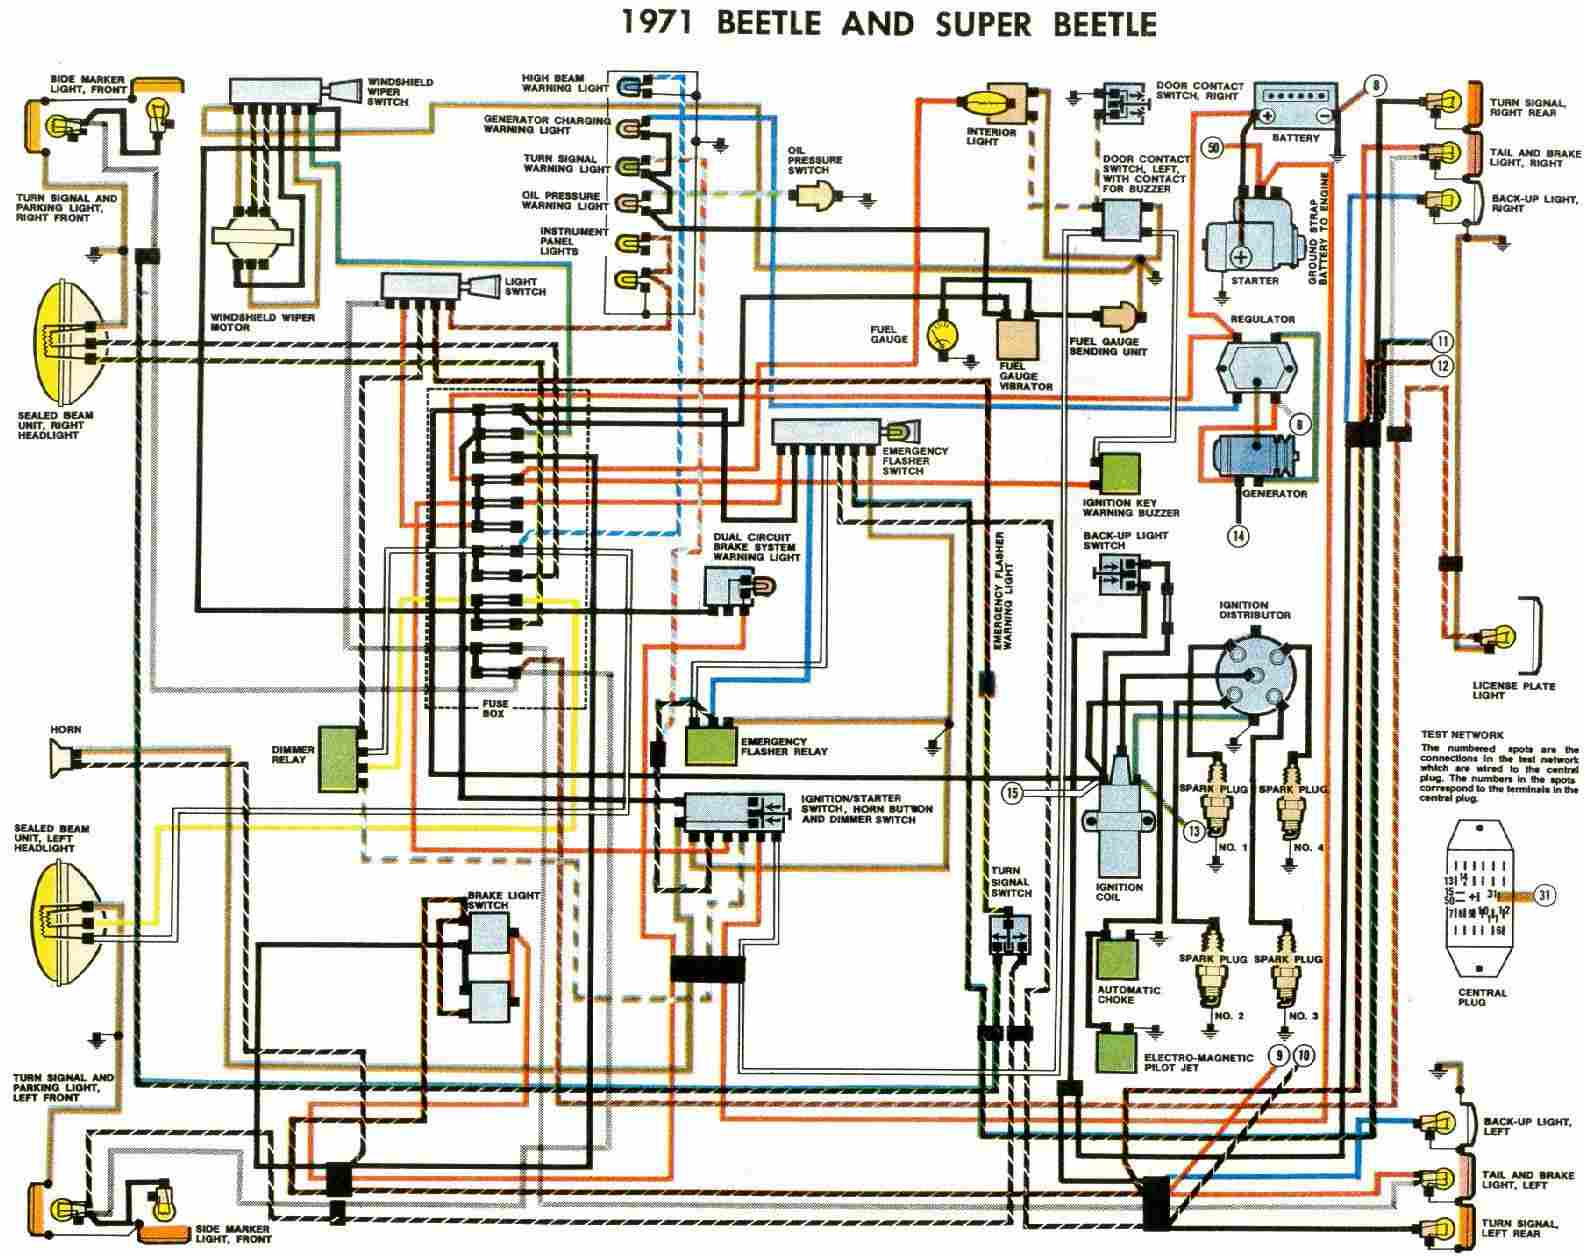 VW+Beetle+and+Super+Beetle+1971+Electrical+Wiring+Diagram southwind motorhome wiring diagram readingrat net Volkswagen Cabriolet Convertible at gsmx.co